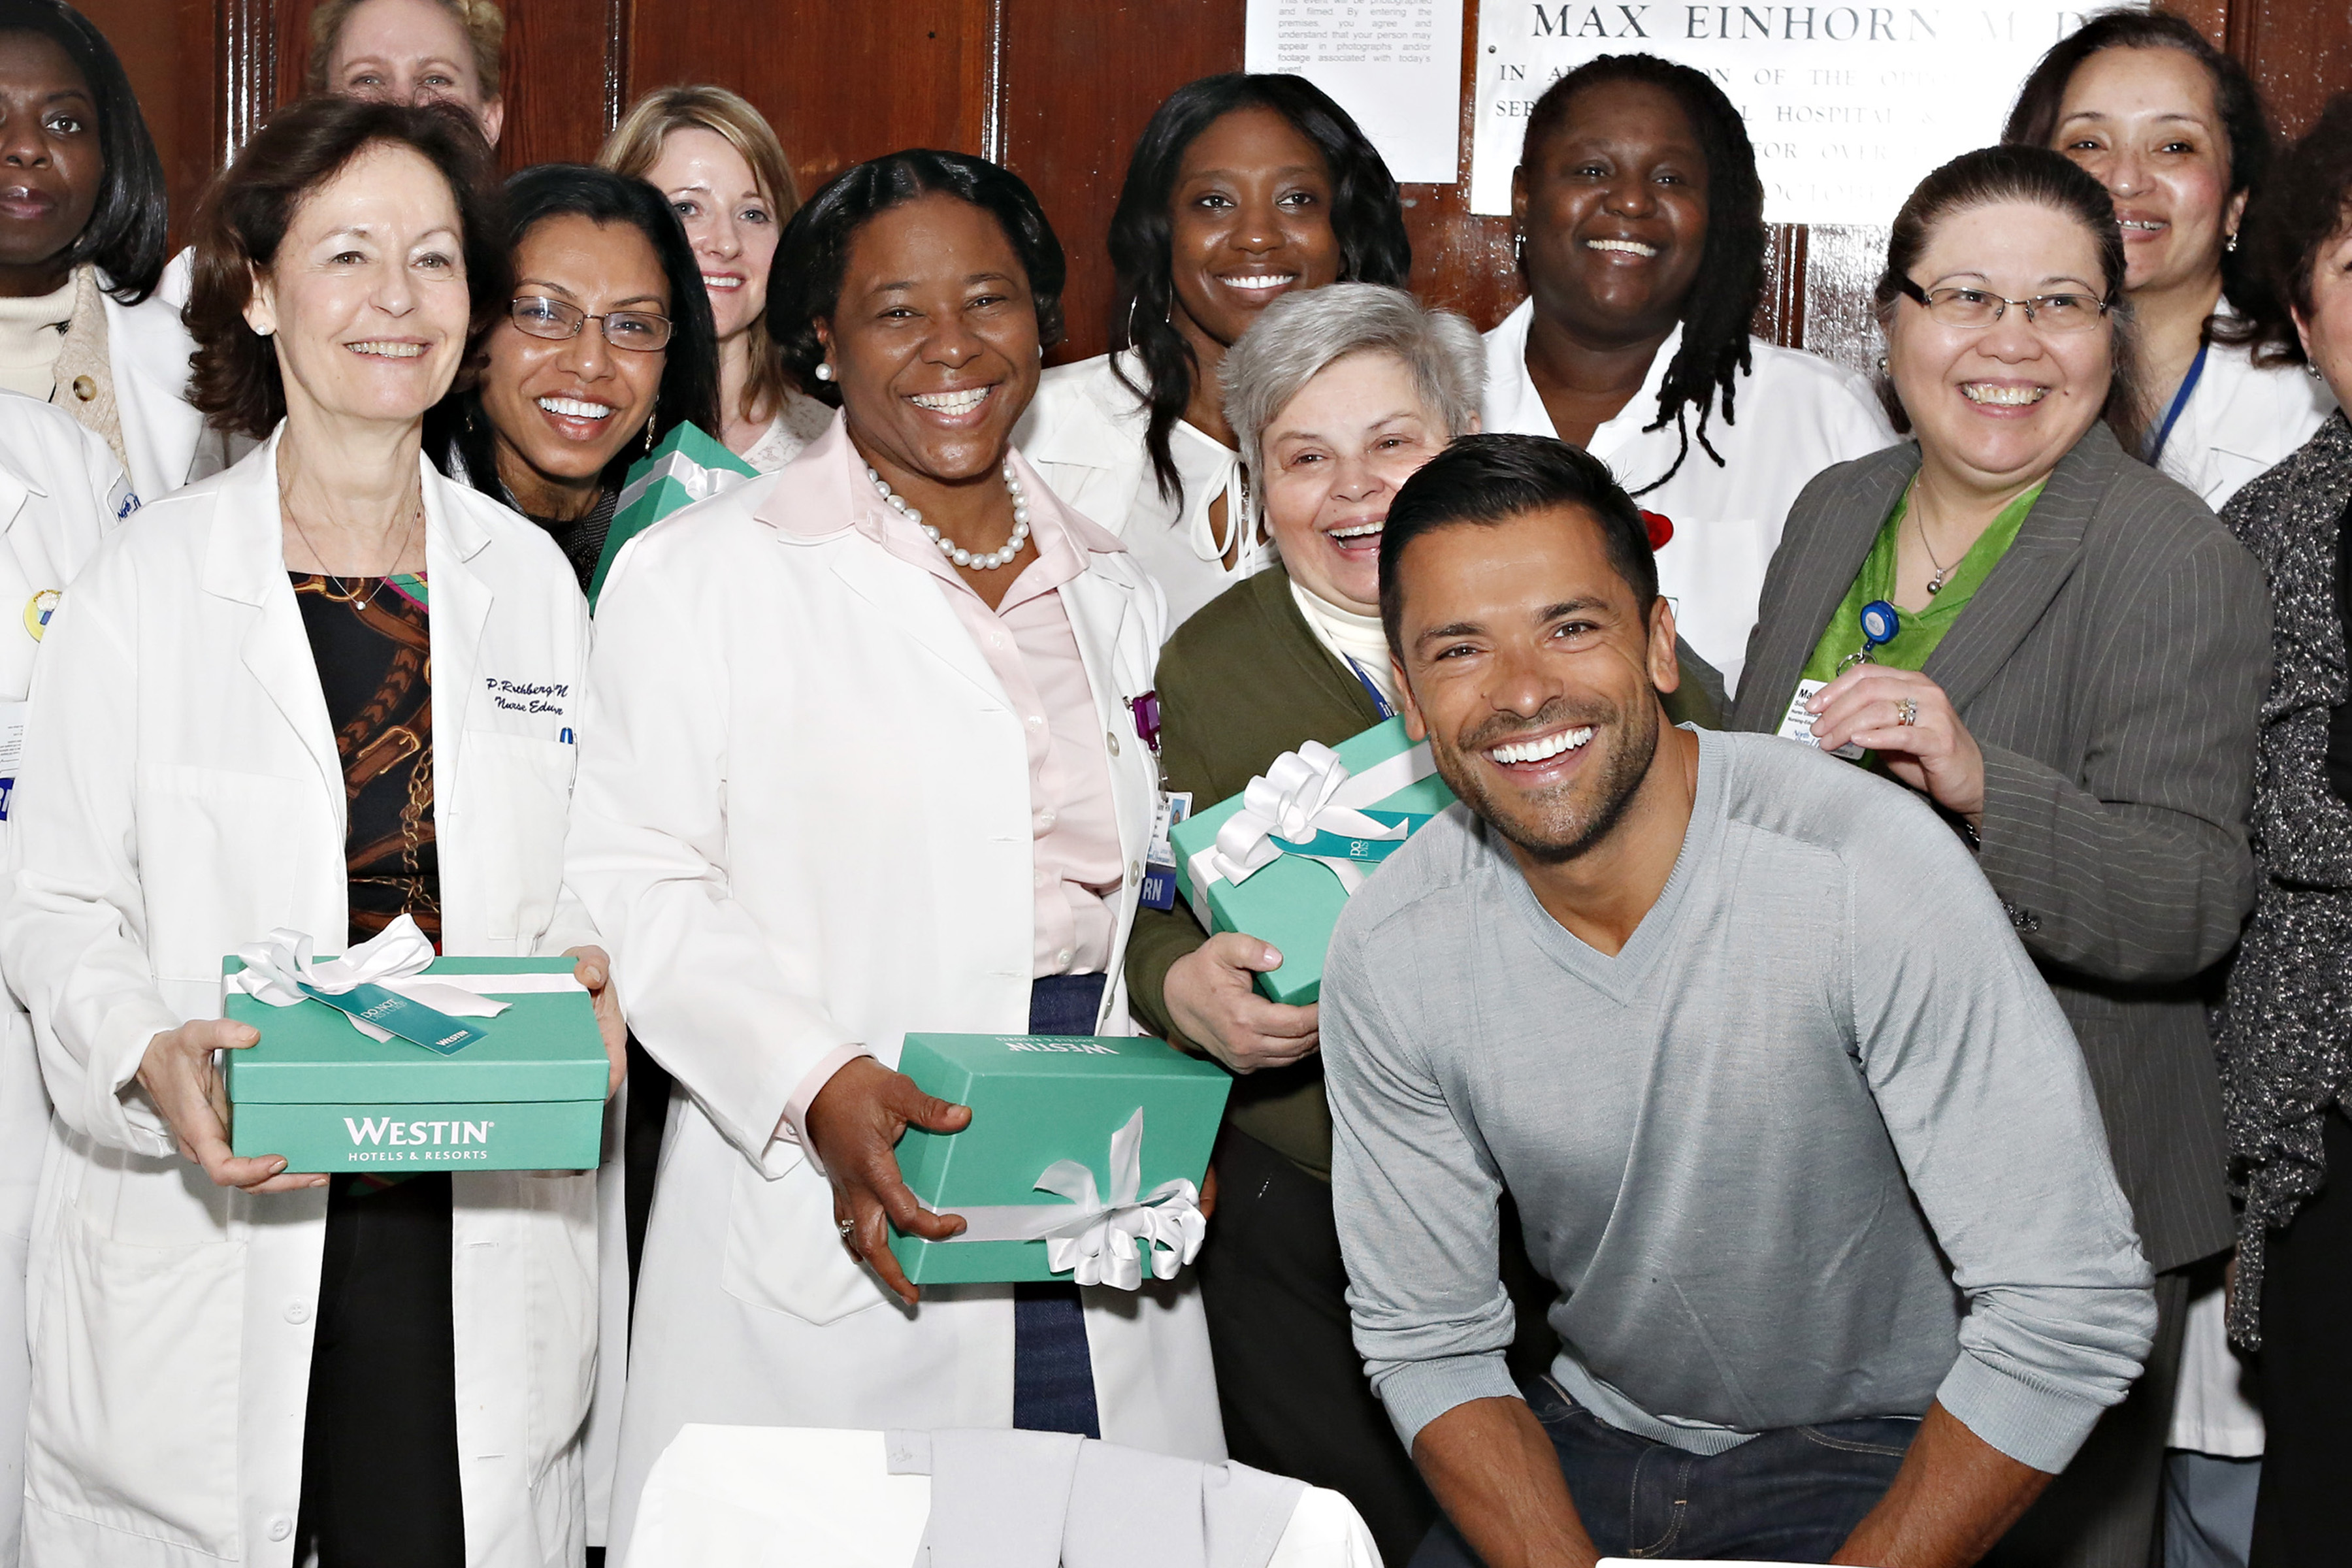 Mark Consuelos surprises hundreds of nurses at Lenox Hill Hospital with a Westin Weekend getaway to celebrate the launch of the brand's Make Monday Better campaign. (Photo: Business Wire)